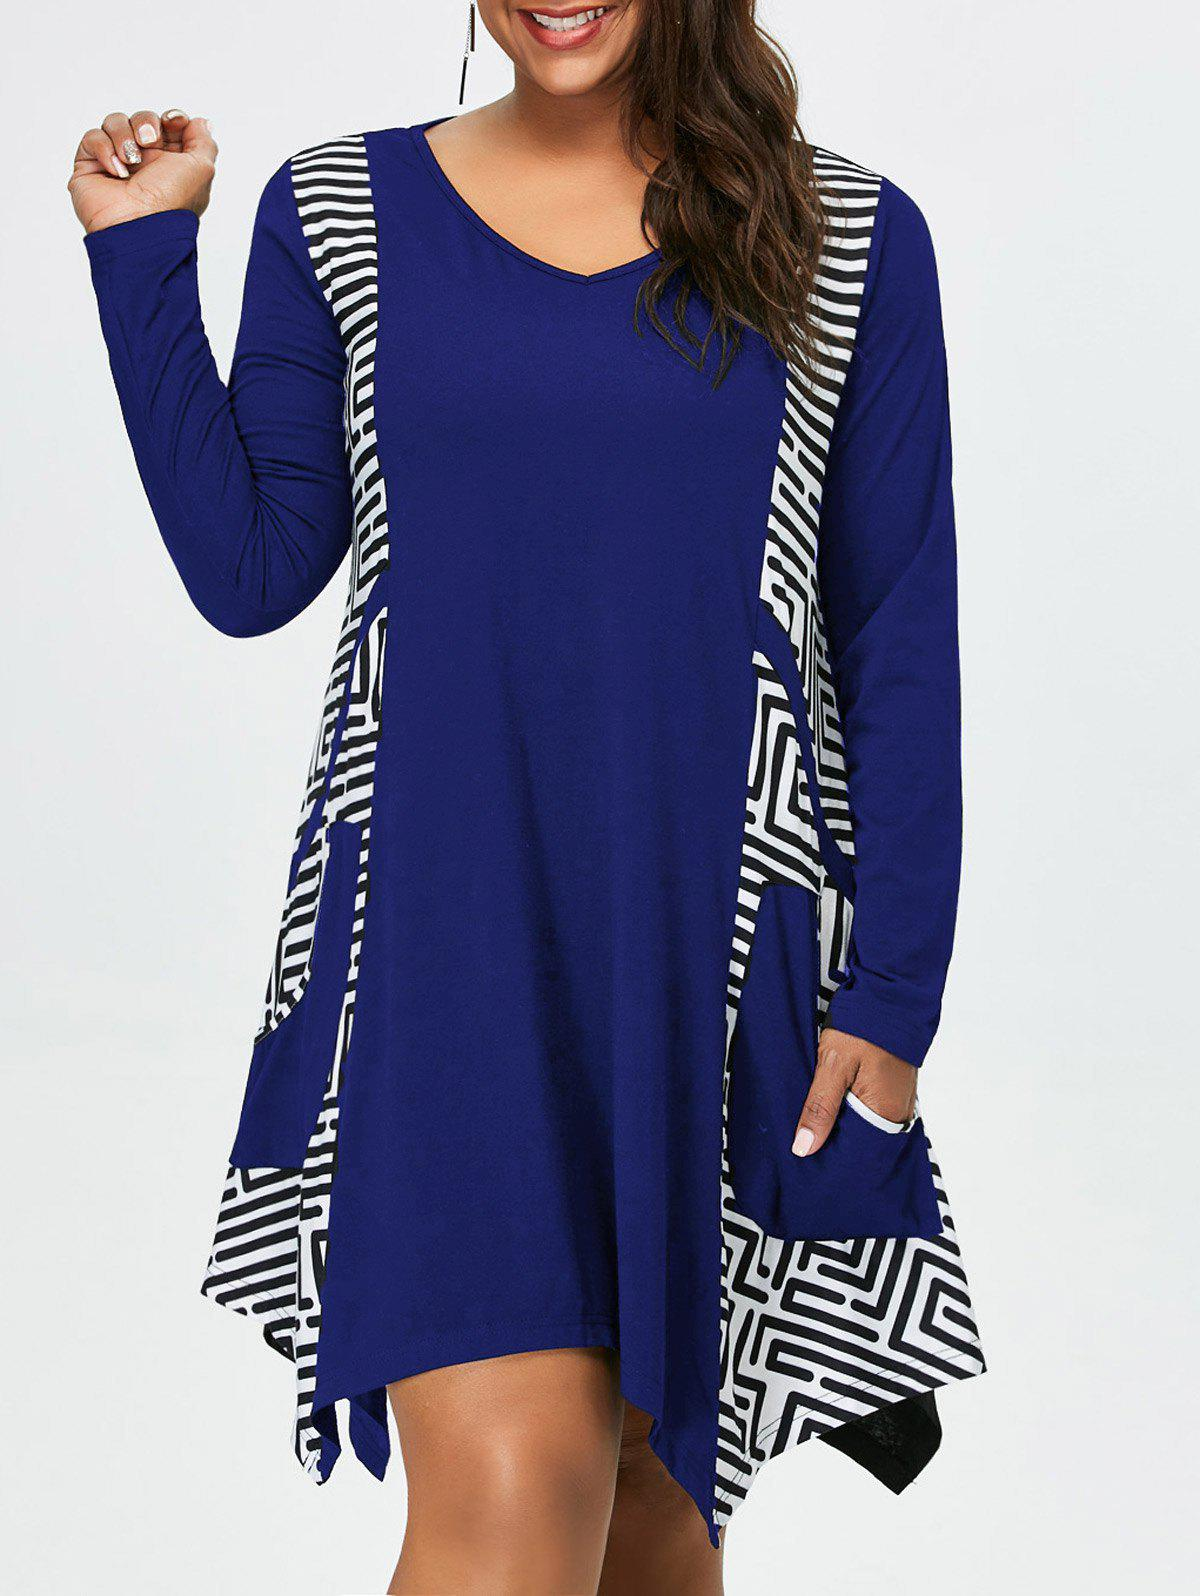 Plus Size Long Sleeve Asymmetrical Tee Dress with PocketsWOMEN<br><br>Size: 5XL; Color: BLUE; Style: Casual; Material: Polyester,Spandex; Silhouette: Asymmetrical; Dresses Length: Knee-Length; Neckline: V-Neck; Sleeve Length: Long Sleeves; Pattern Type: Others; With Belt: No; Season: Fall,Spring,Summer; Weight: 0.4200kg; Package Contents: 1 x Dress;